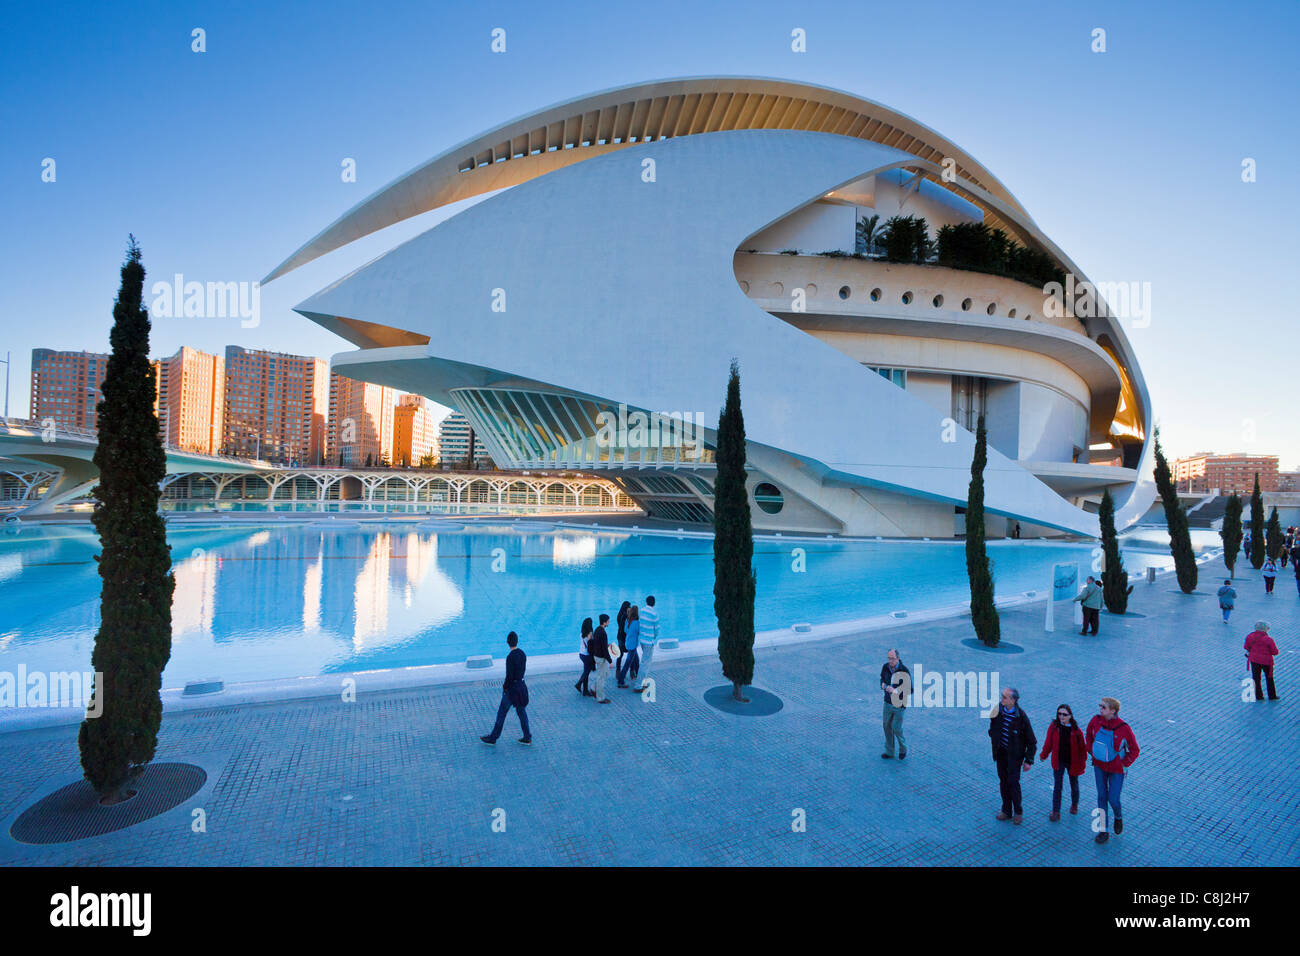 Spain, Europe, Valencia, City of Arts and Science, Calatrava, architecture, modern, Palace of Arts, water - Stock Image